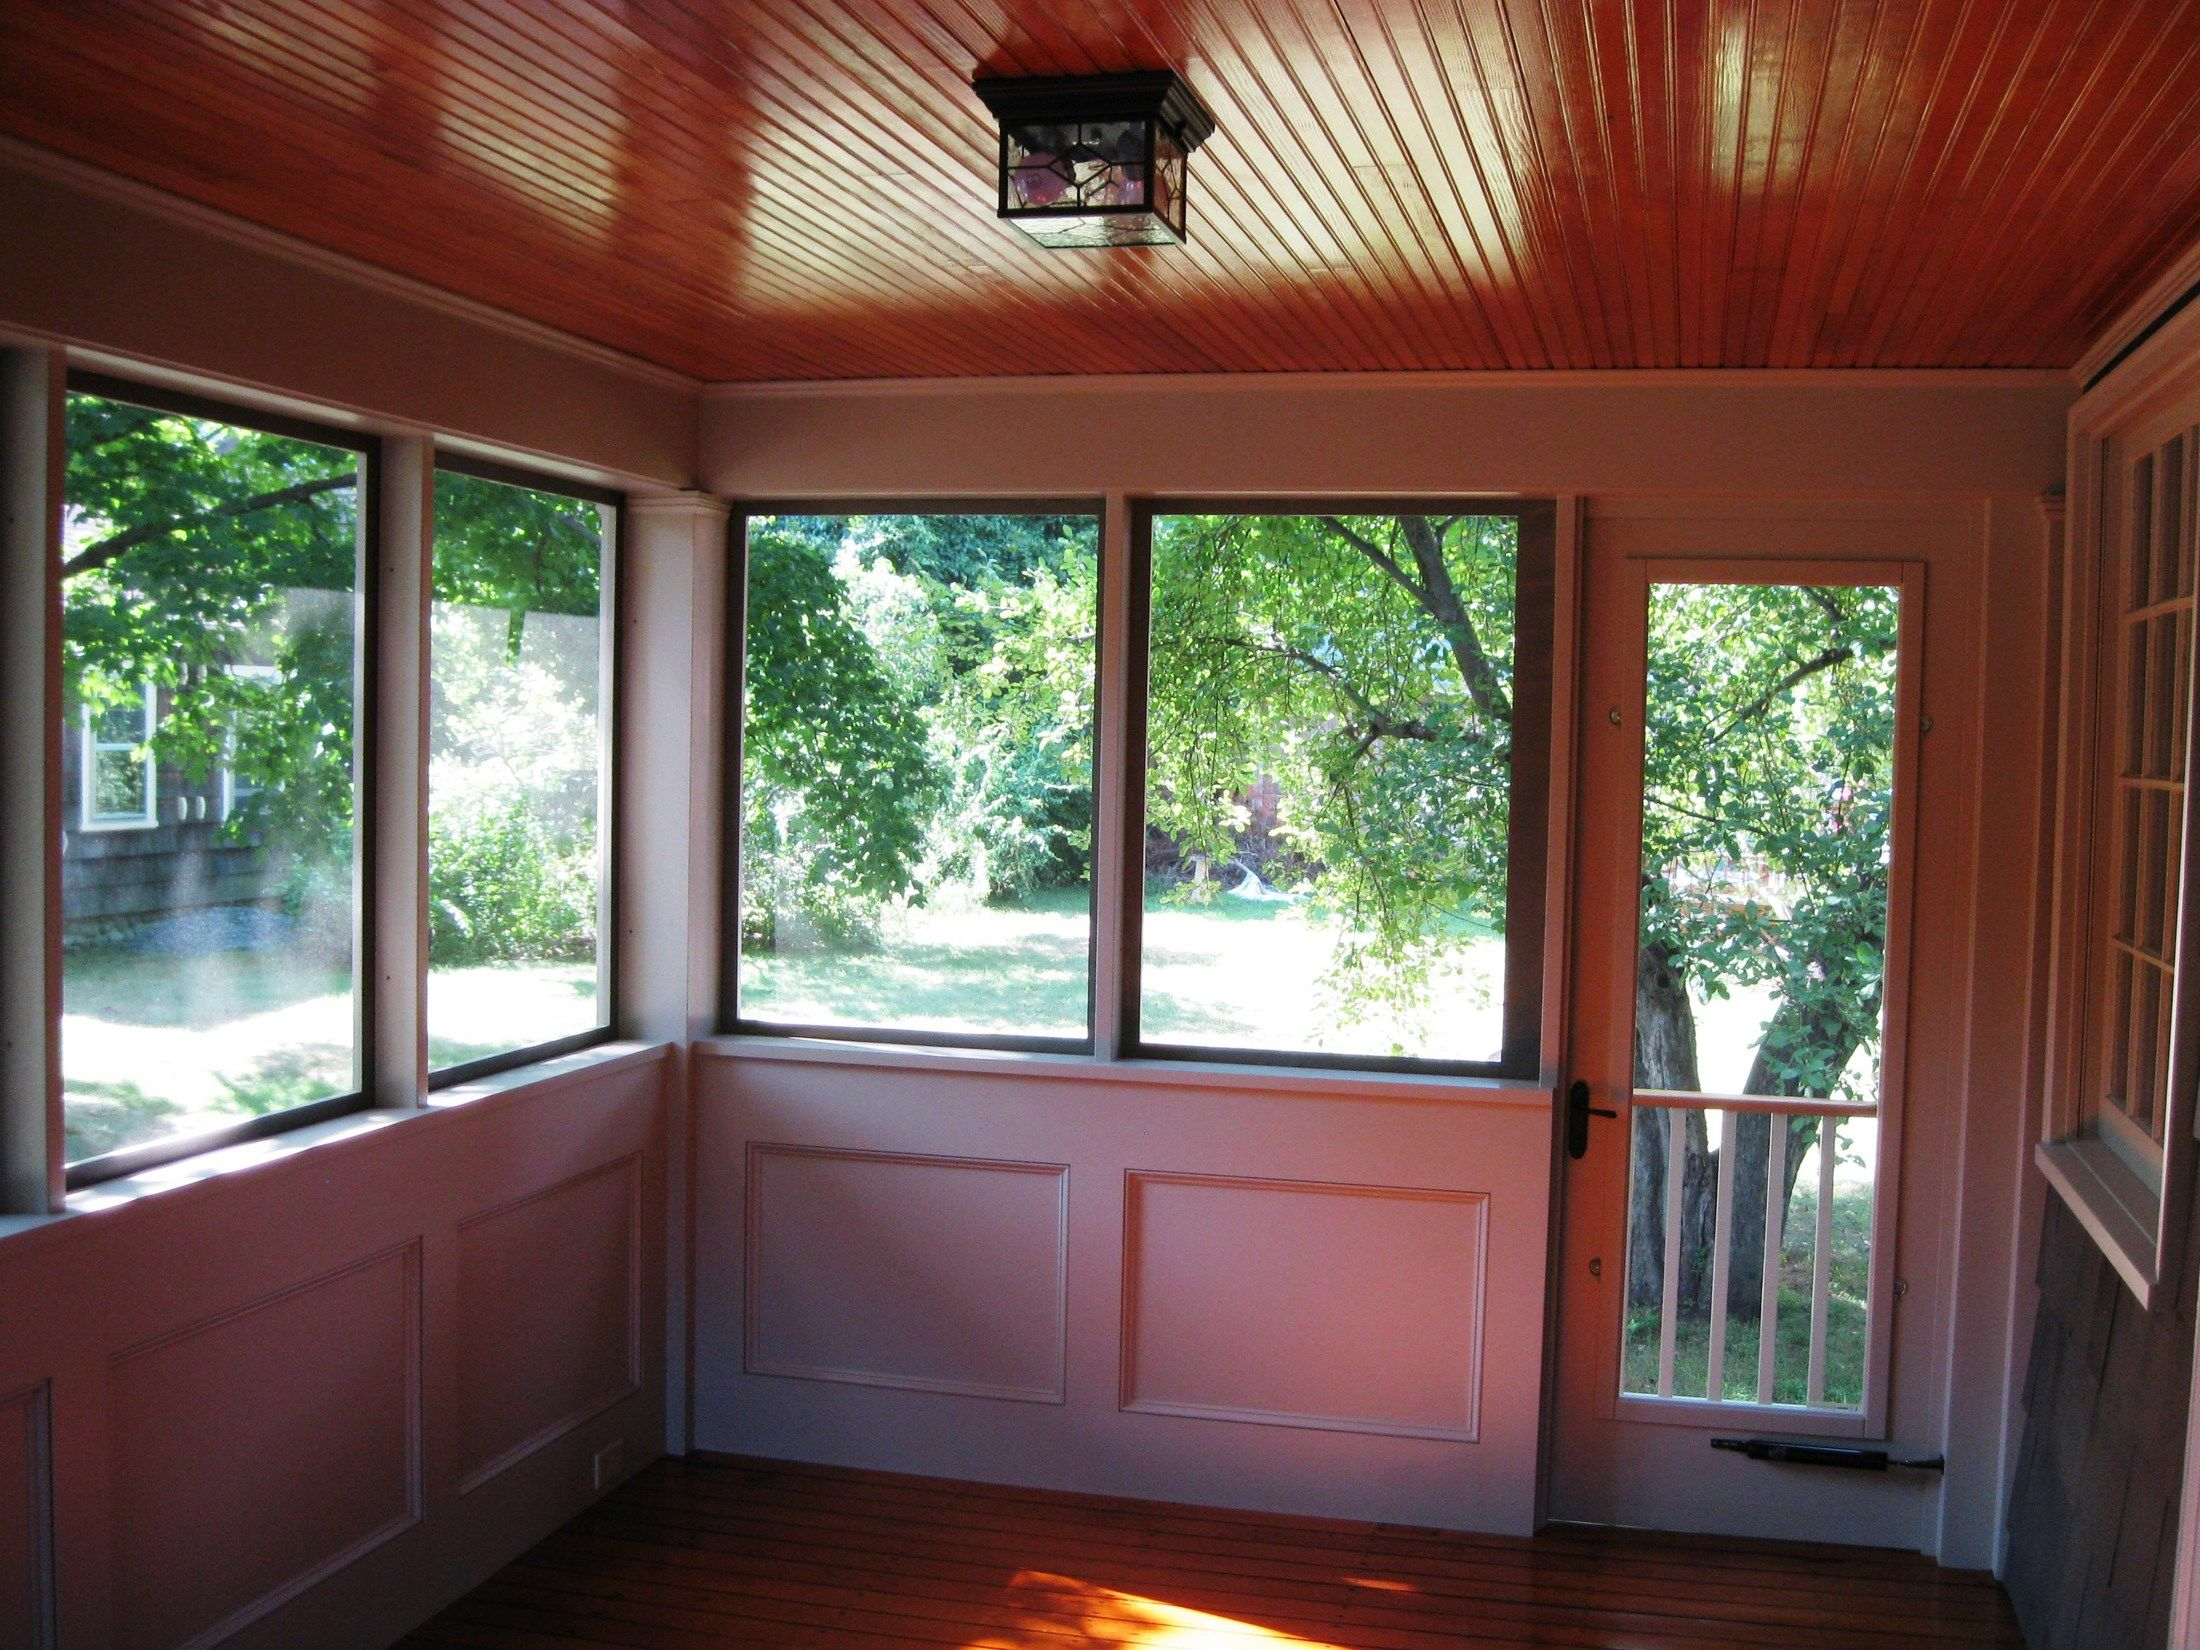 Enclosed Porch - Picture 6822